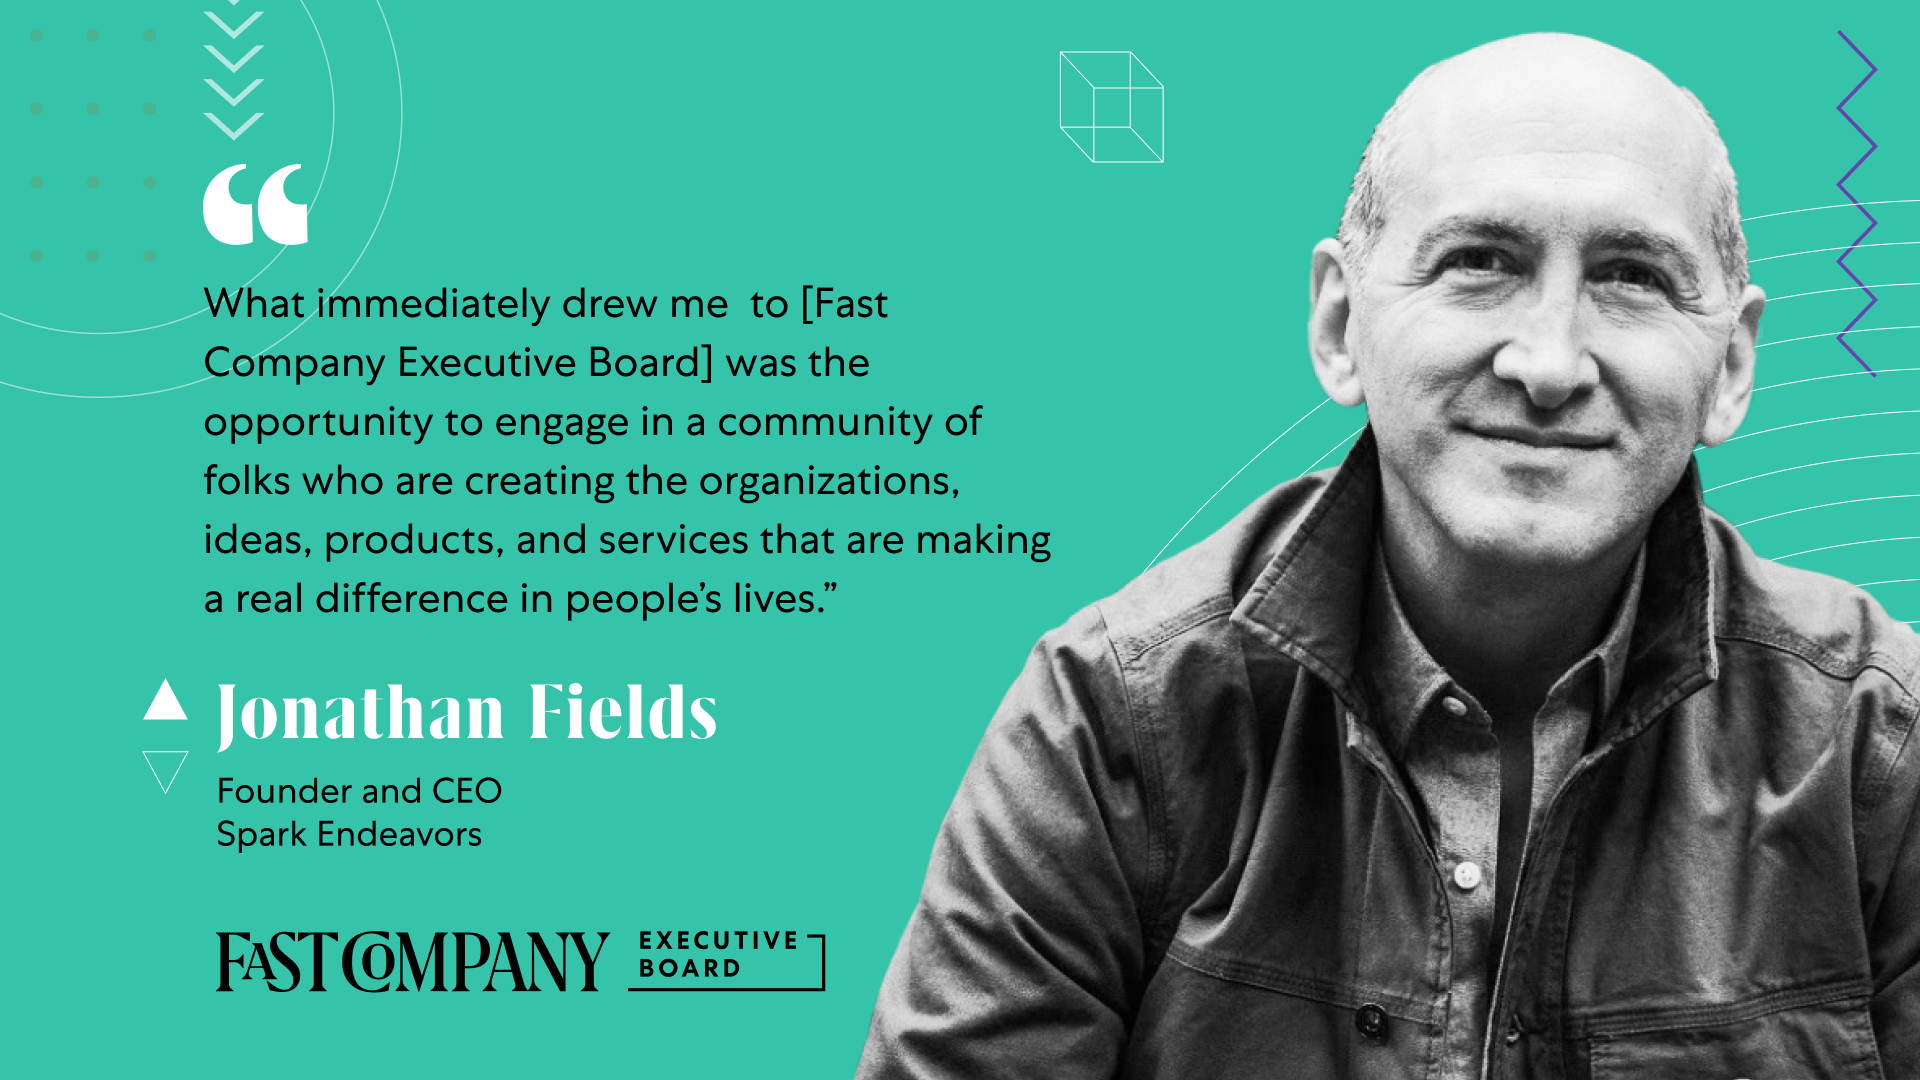 Jonathan Fields Drawn to Fast Company Executive Board's Insightful and Highly Curated Community